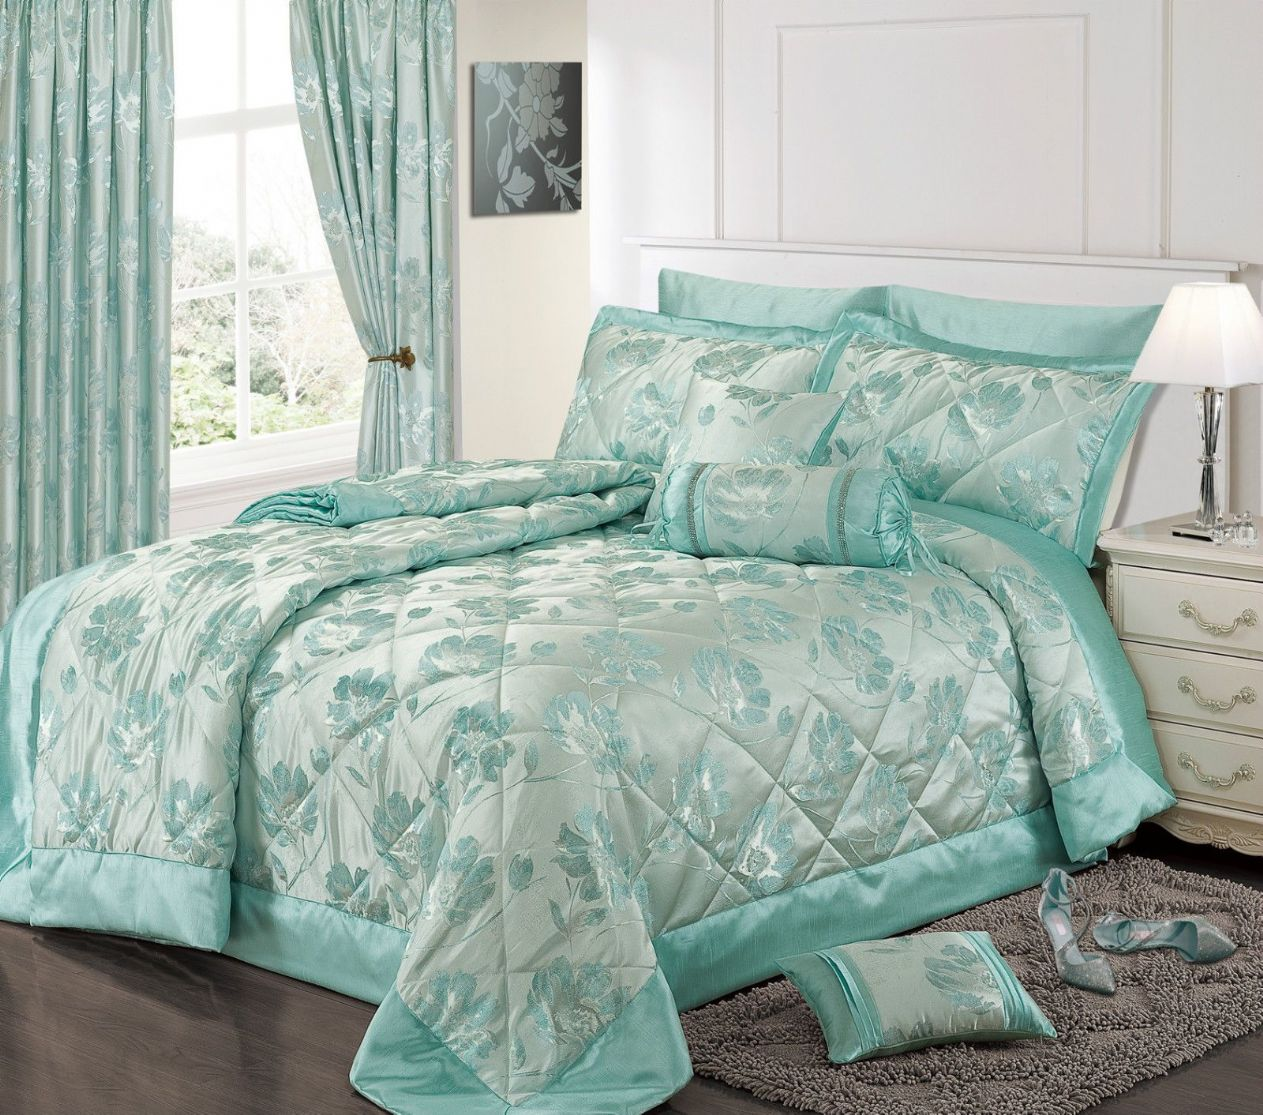 Duck Egg Blue Colour Stylish Floral Jacquard Luxury